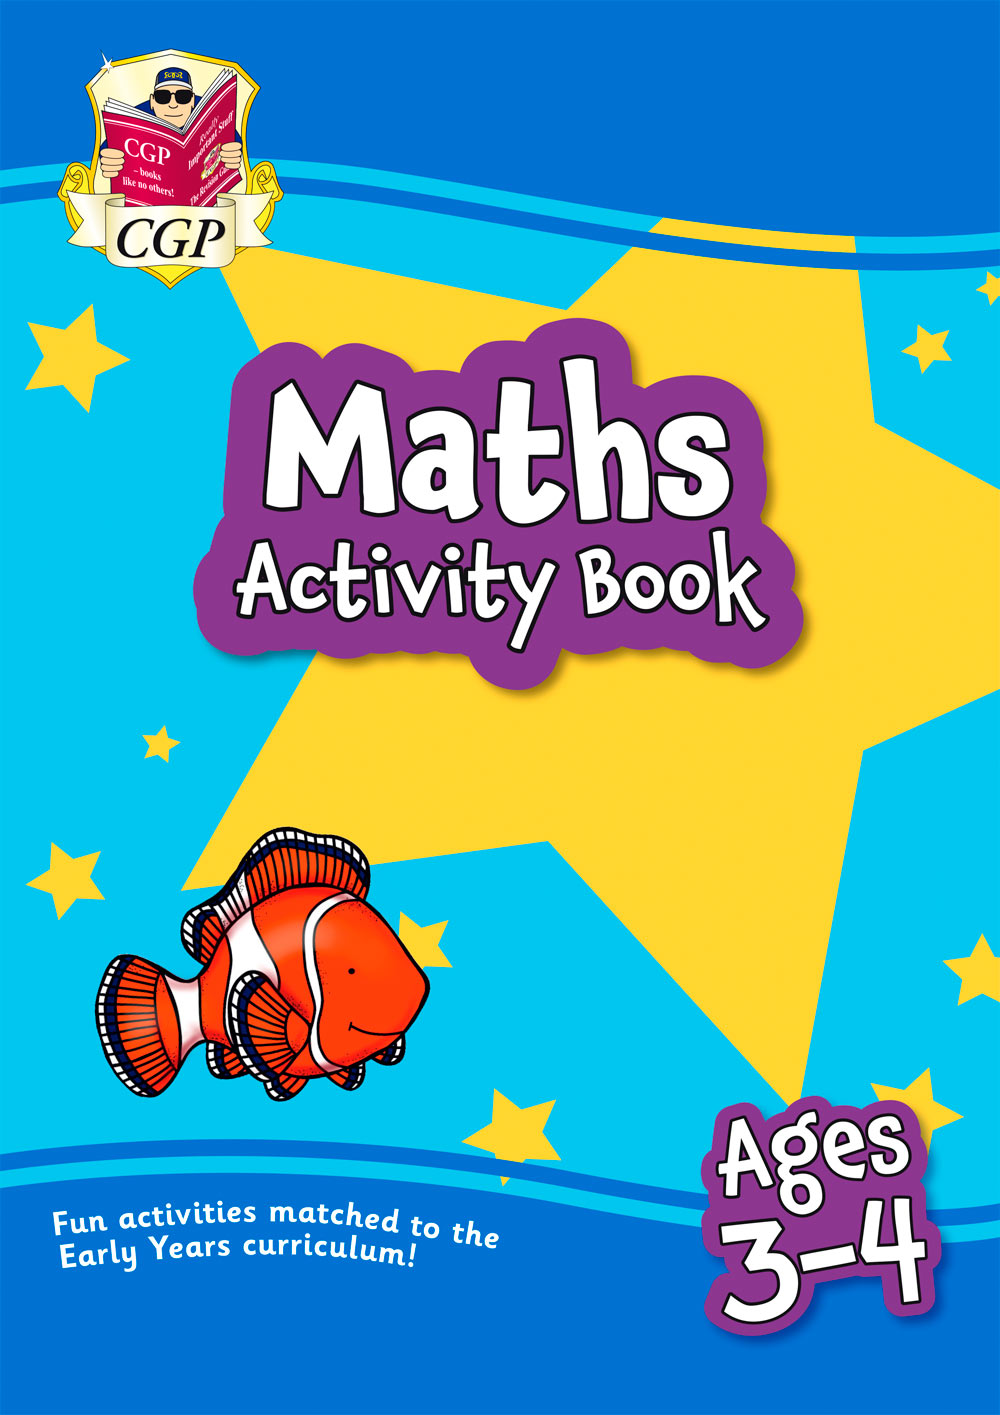 MPFEQ01 - New Maths Home Learning Activity Book for Ages 3-4